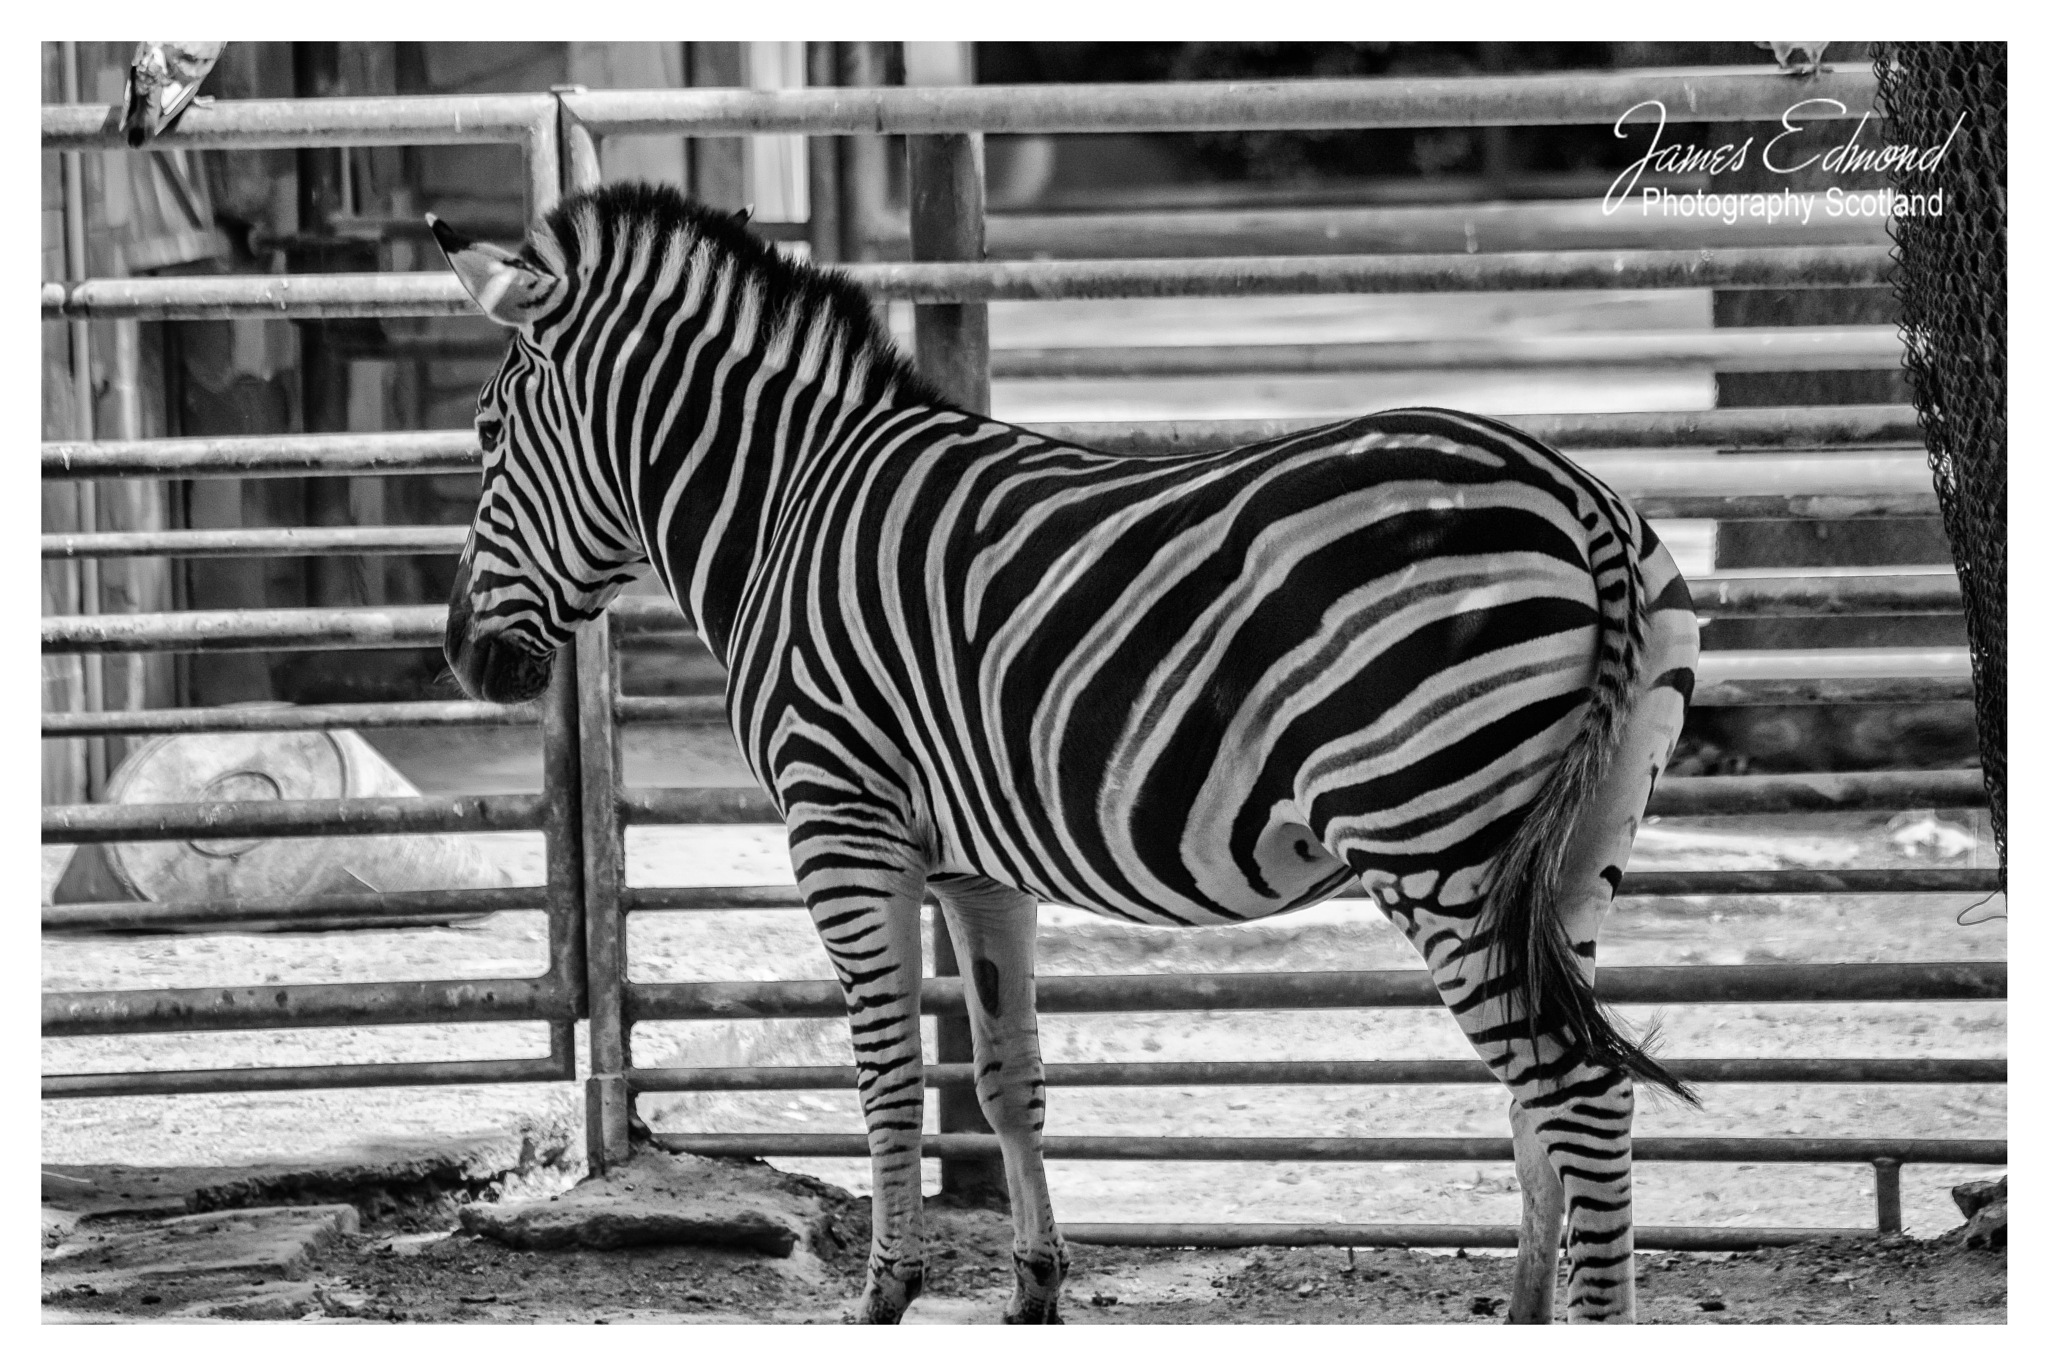 Zebra waiting on it's lunch by James Edmond Photography